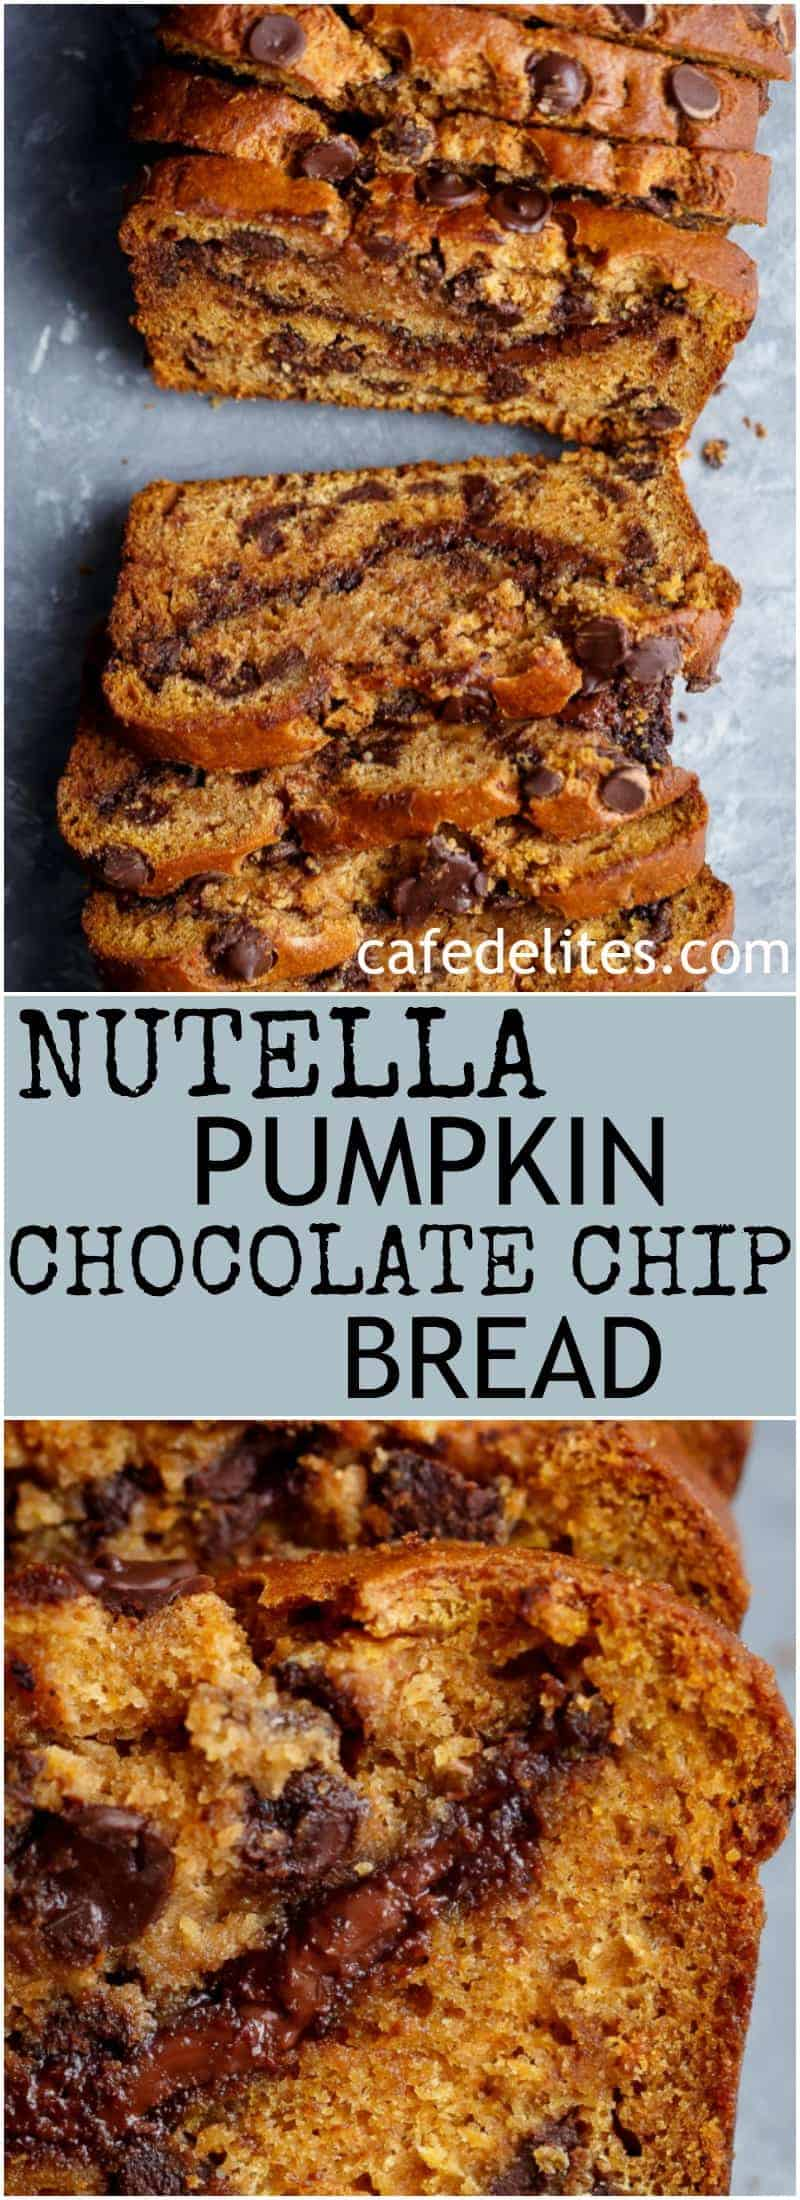 One Bowl Nutella Pumpkin Chocolate Chip Bread is filled with fall flavours and melt in your mouth chocolate chips! With just a handful of ingredients, this is THE bread of the season the whole family will love! | https://cafedelites.com